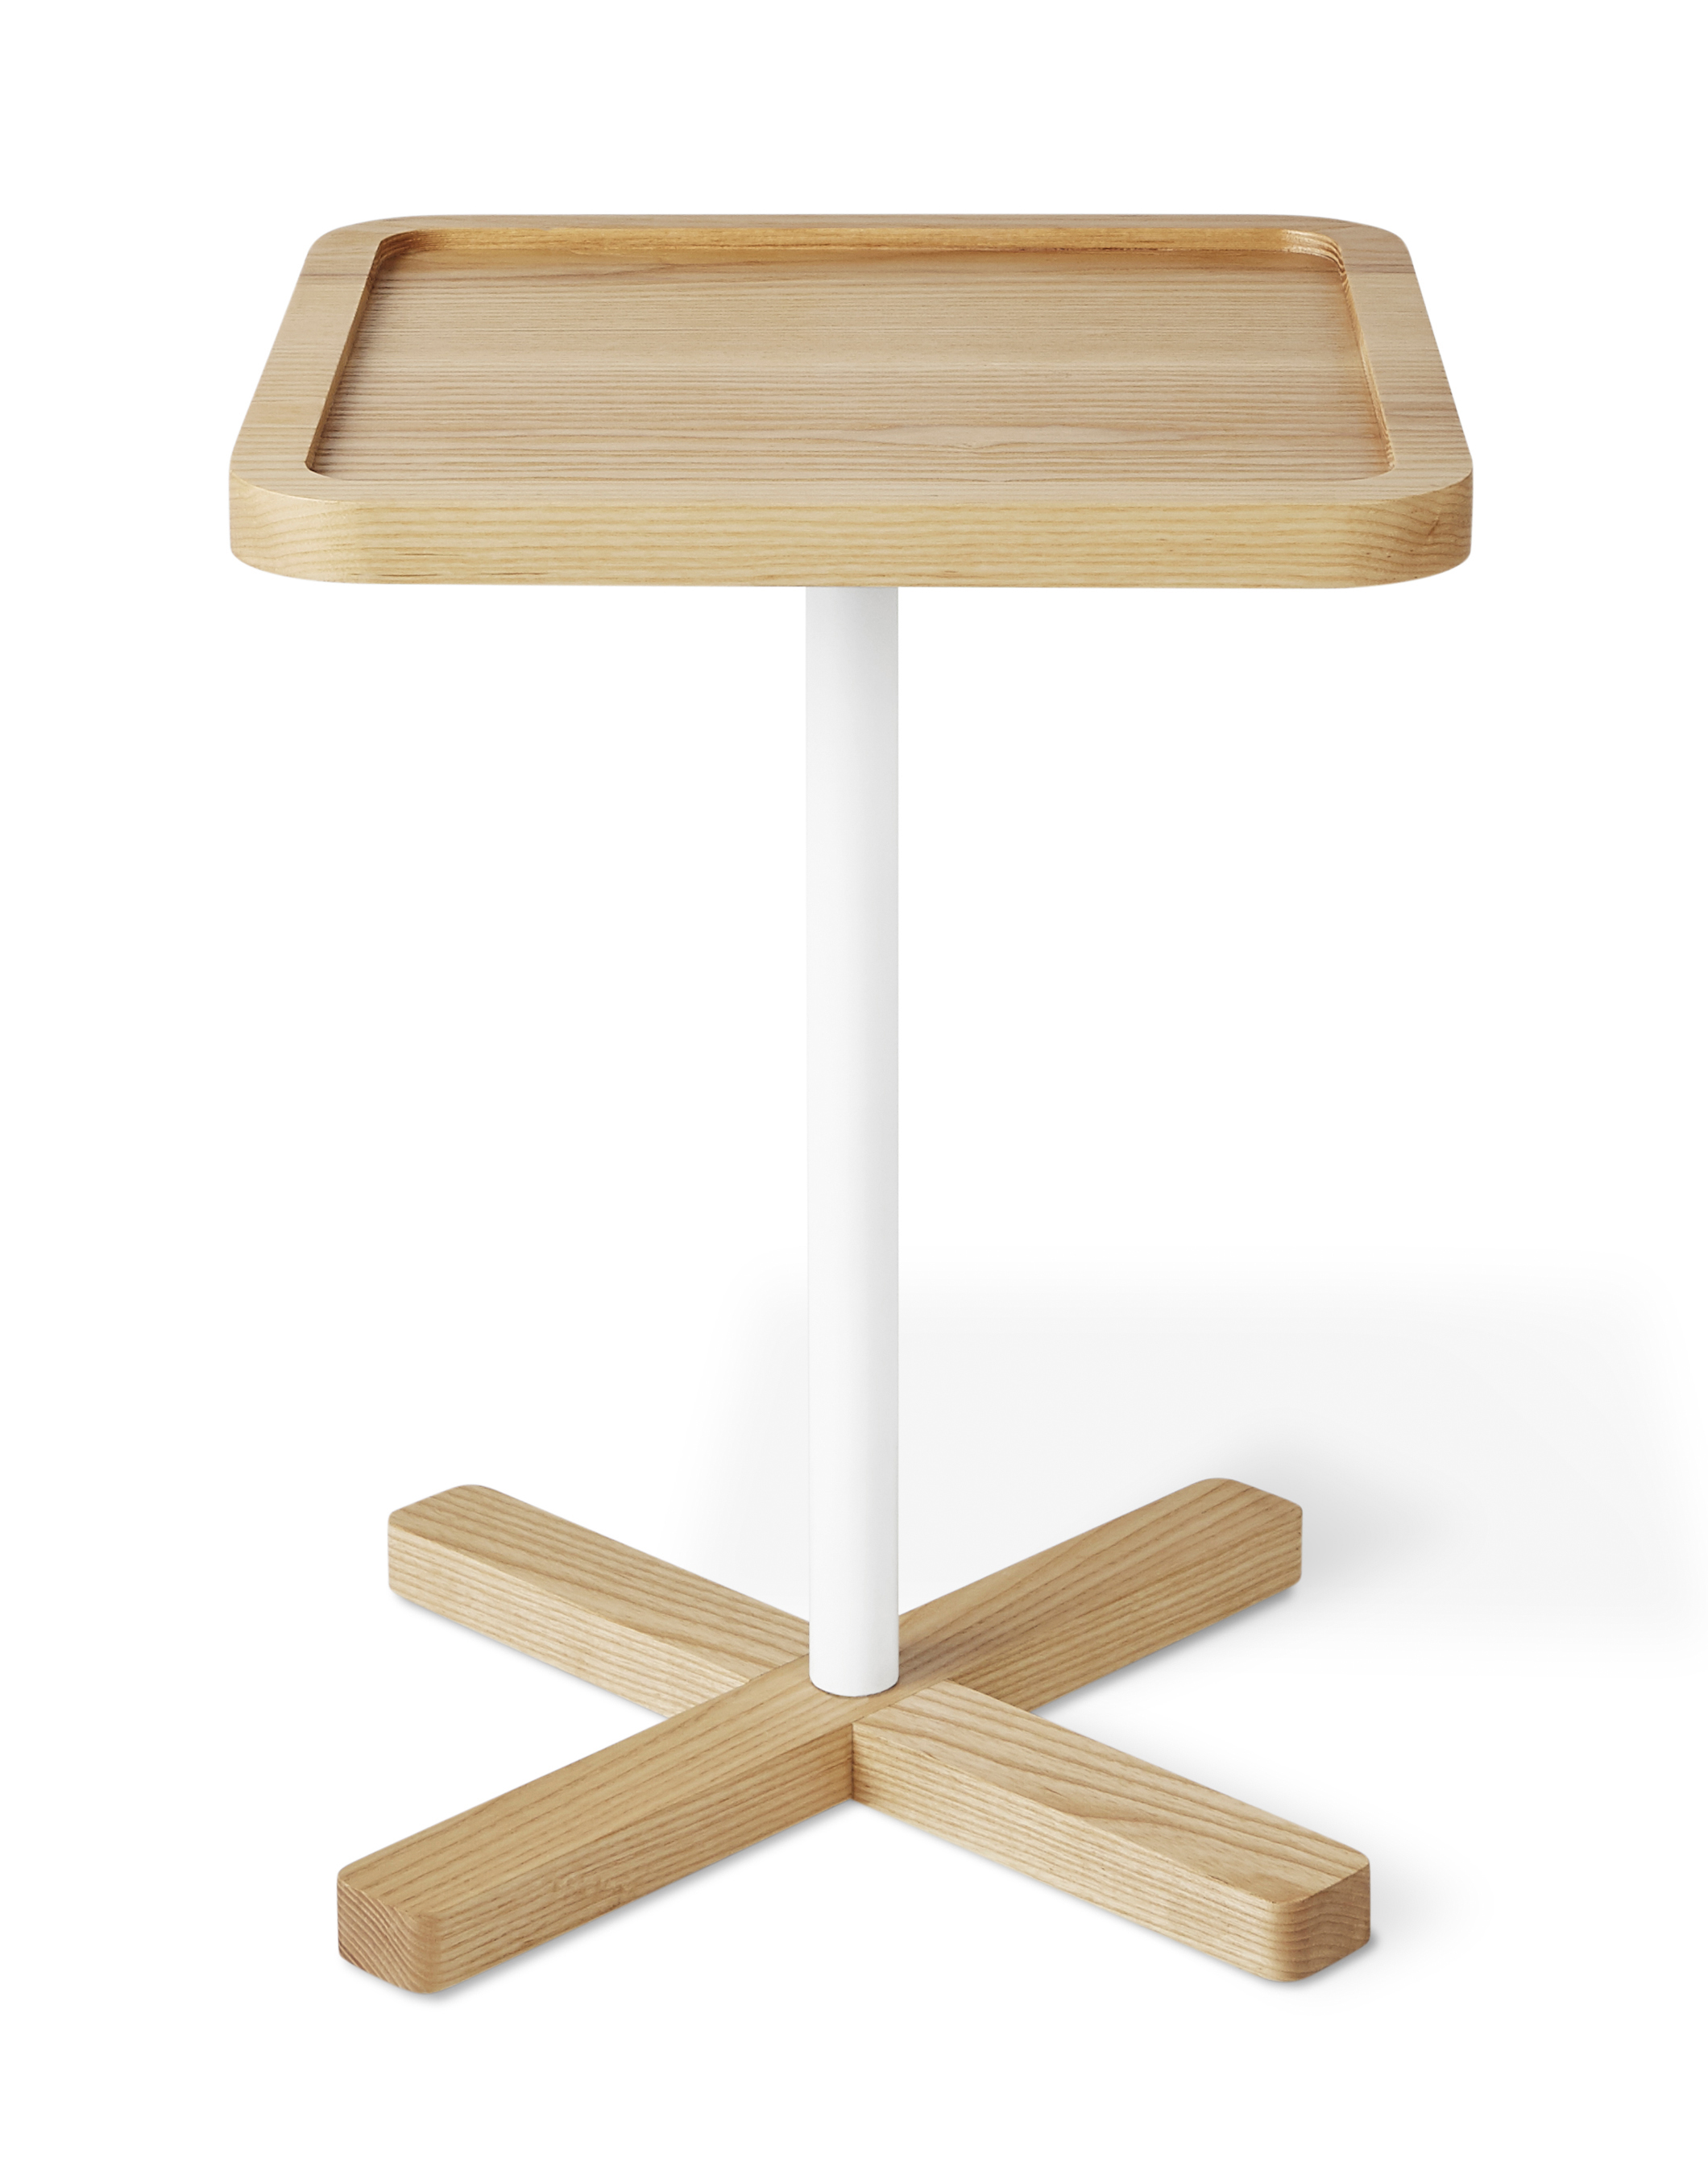 Gus Design Group Axis end table